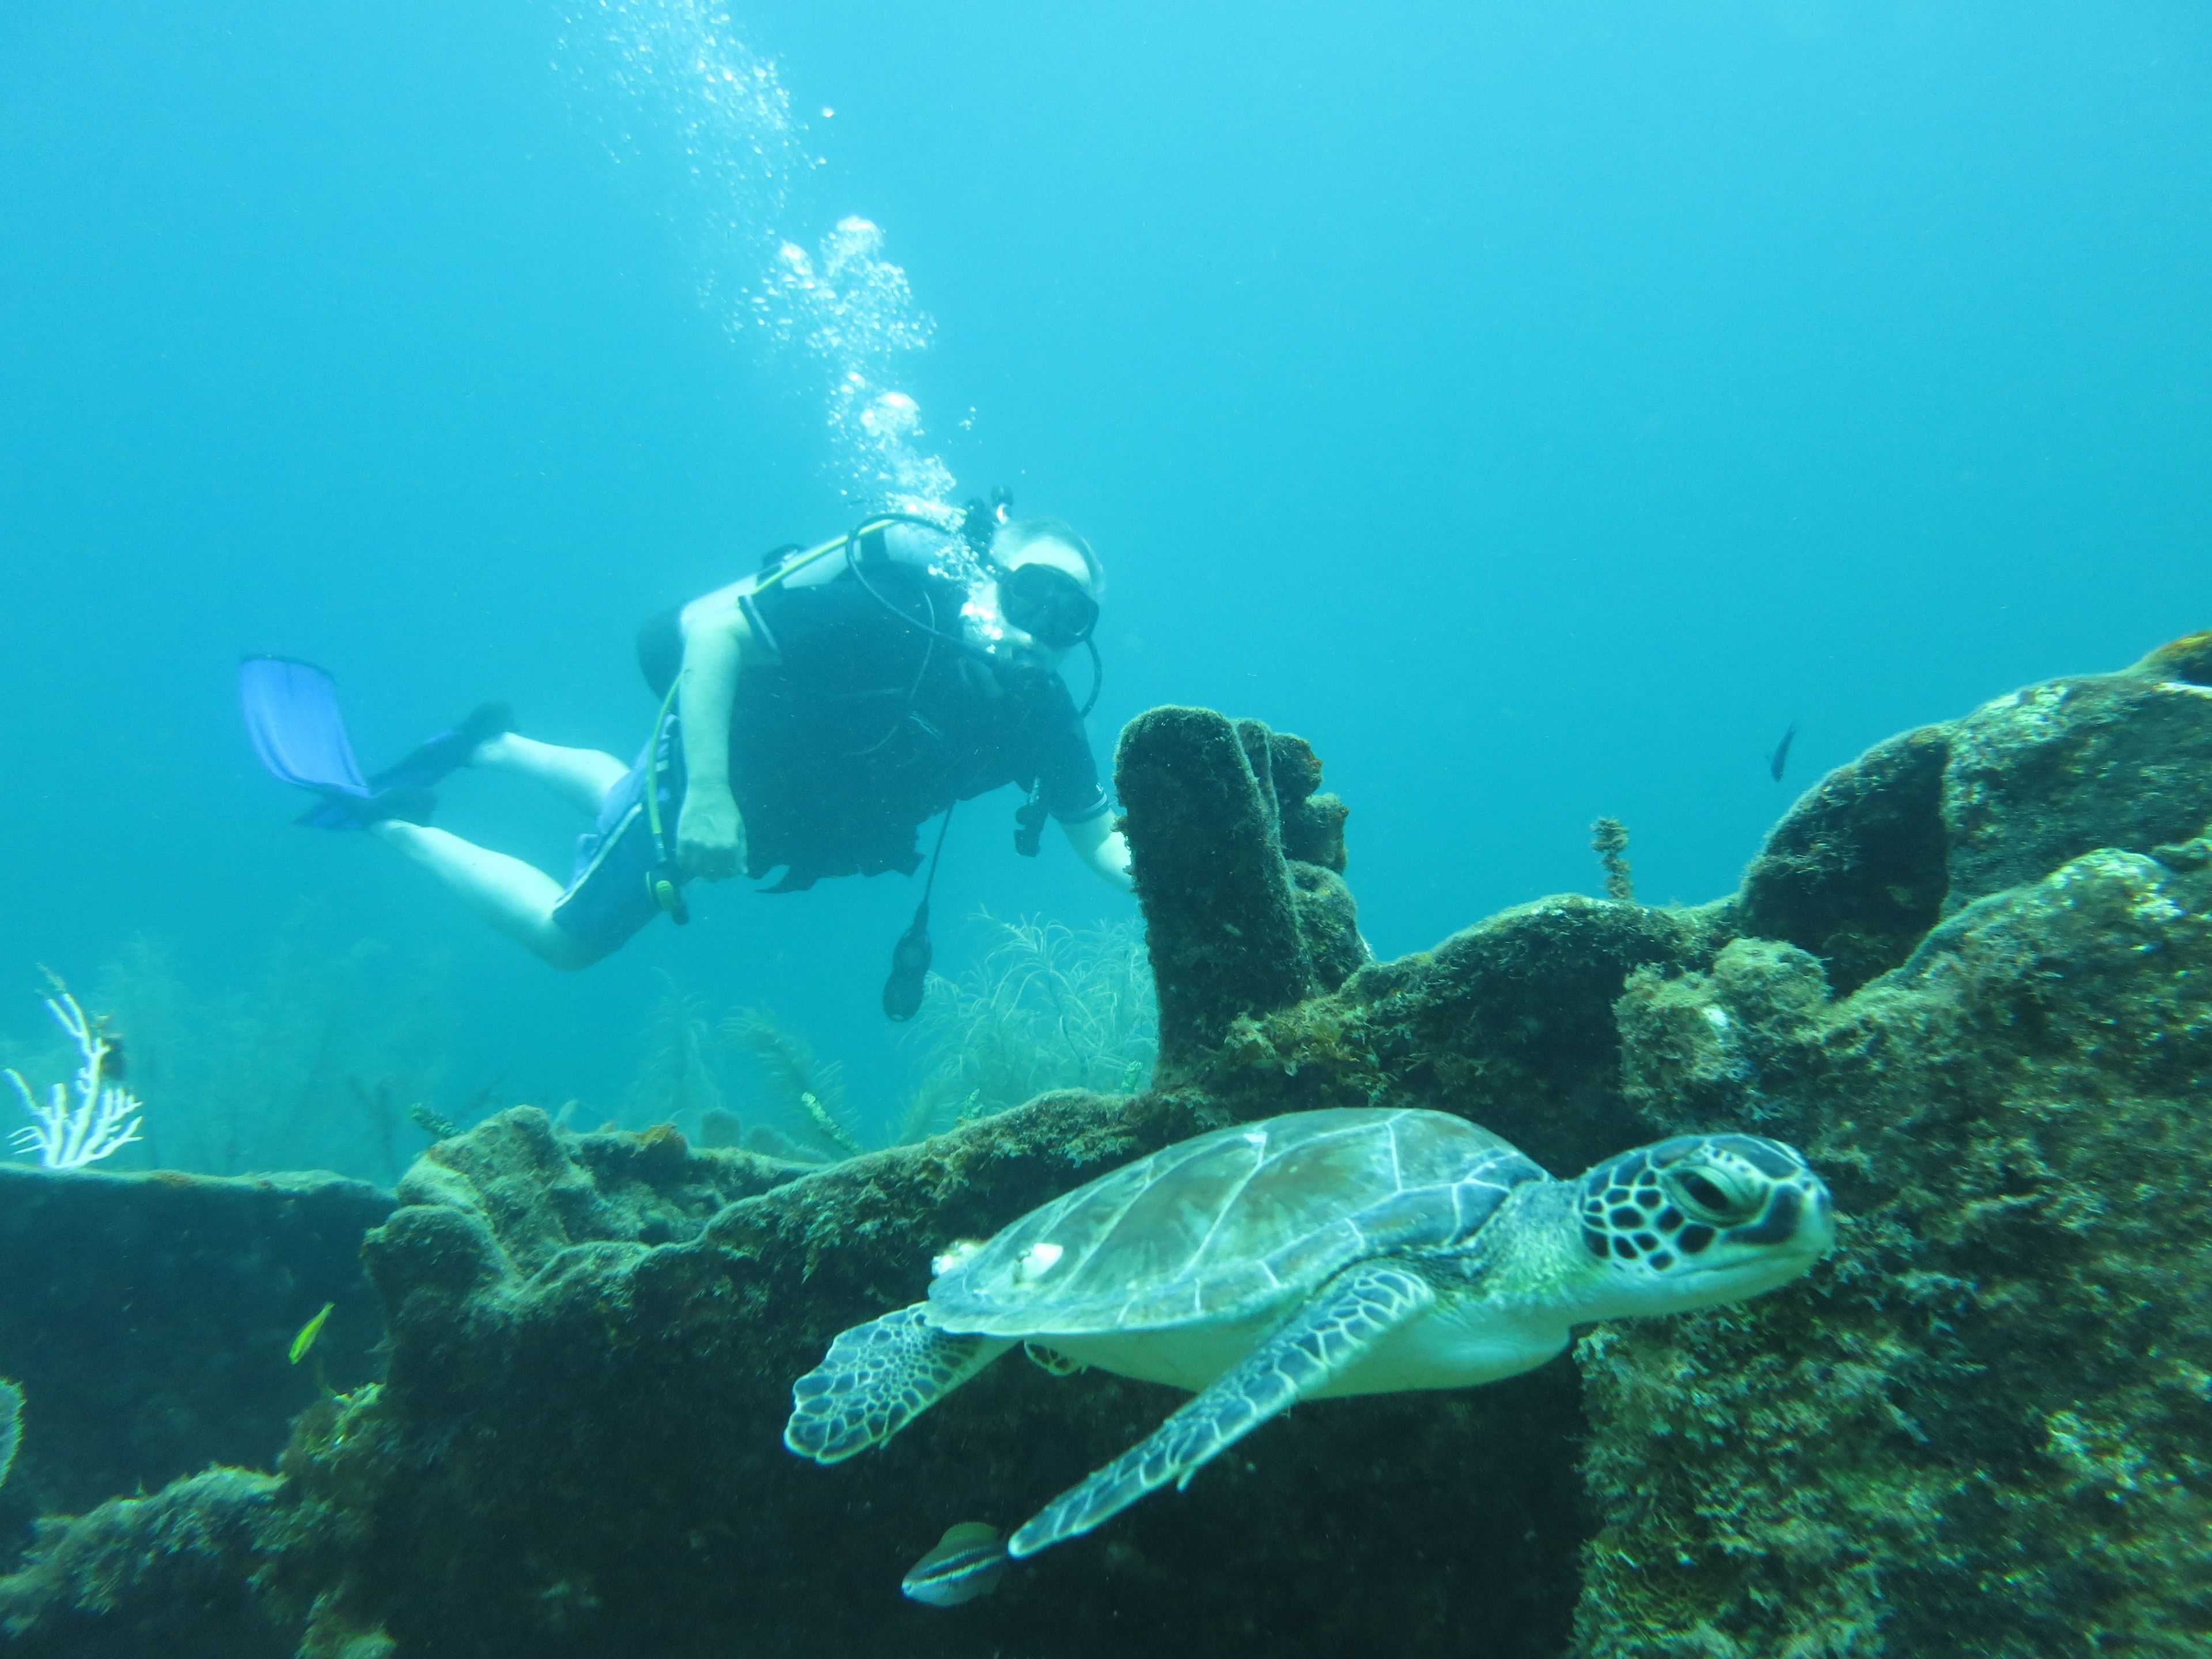 Bucket List Scuba Diving - The One Day Course To SCUBA Dive